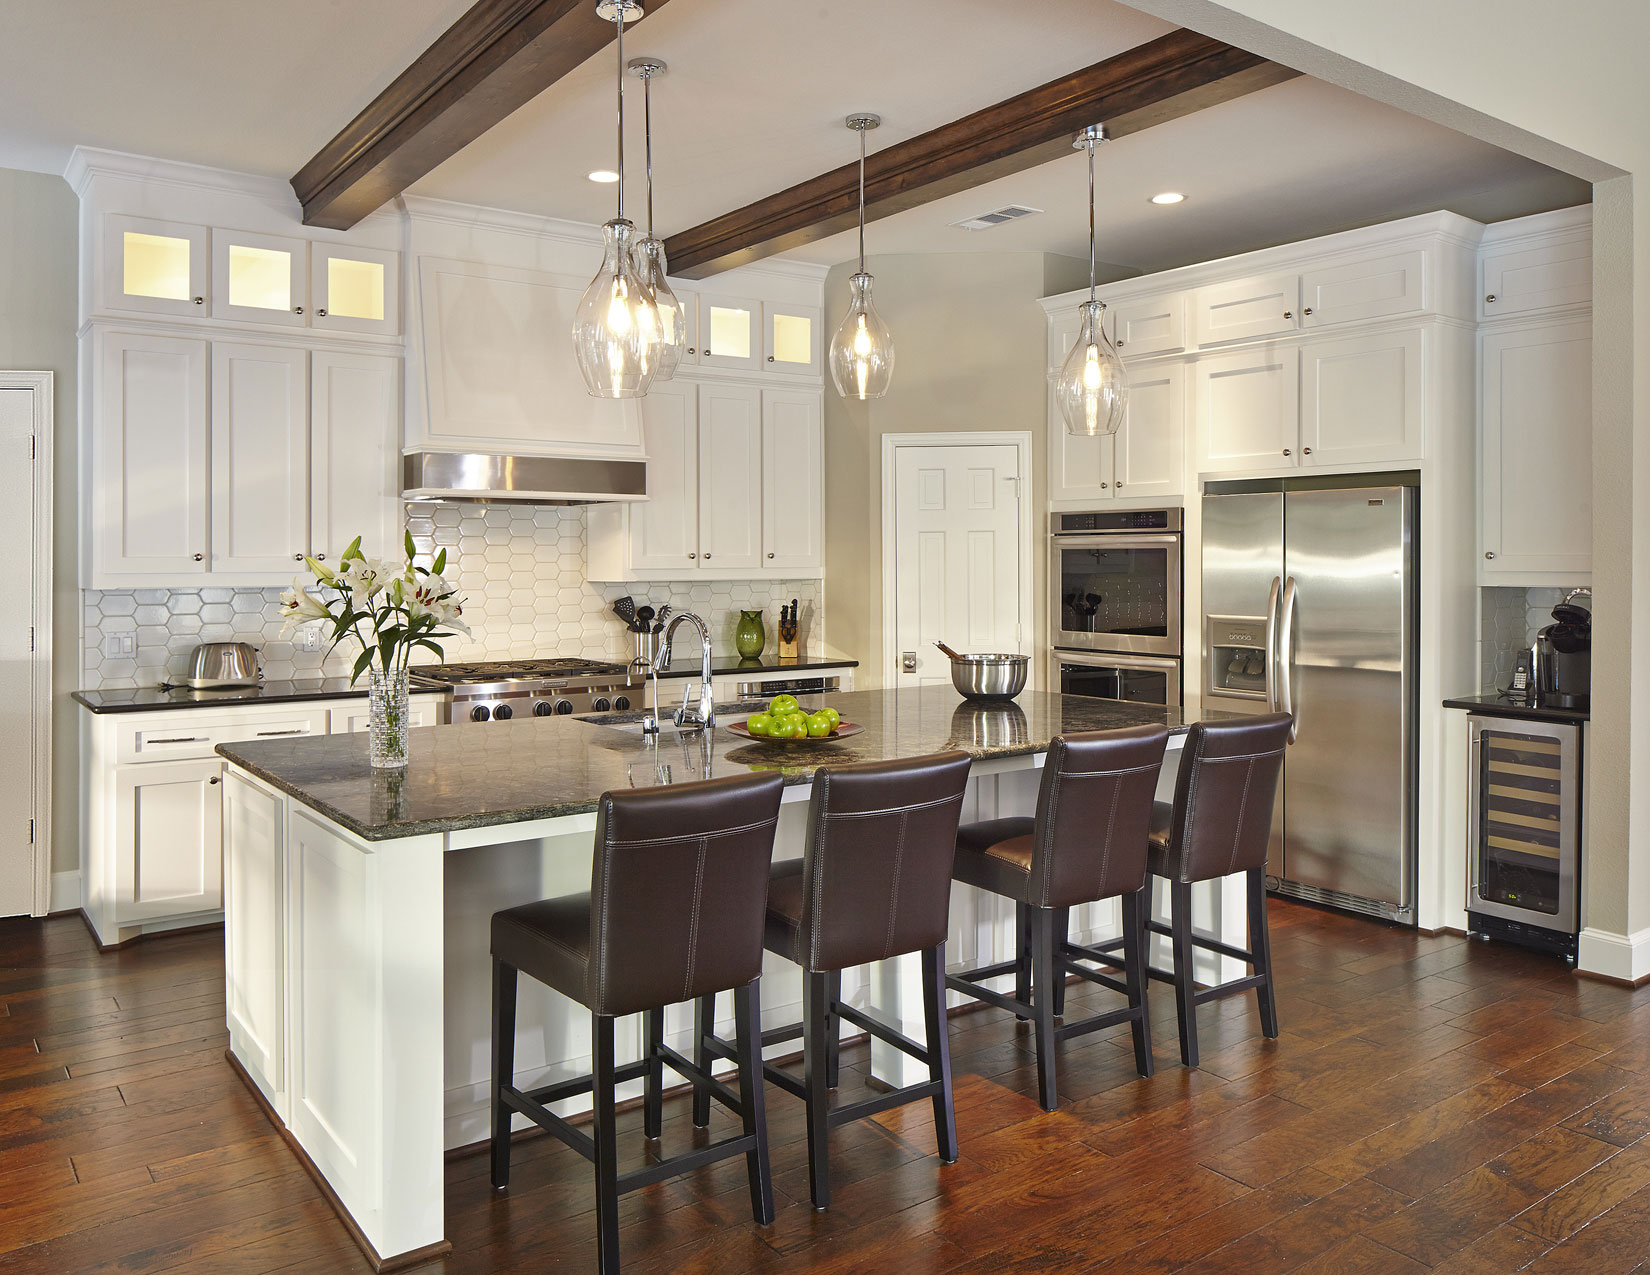 Delicieux Kitchen Remodeling Dallas, Kitchen Renovation Plano, Kitchen Design Build